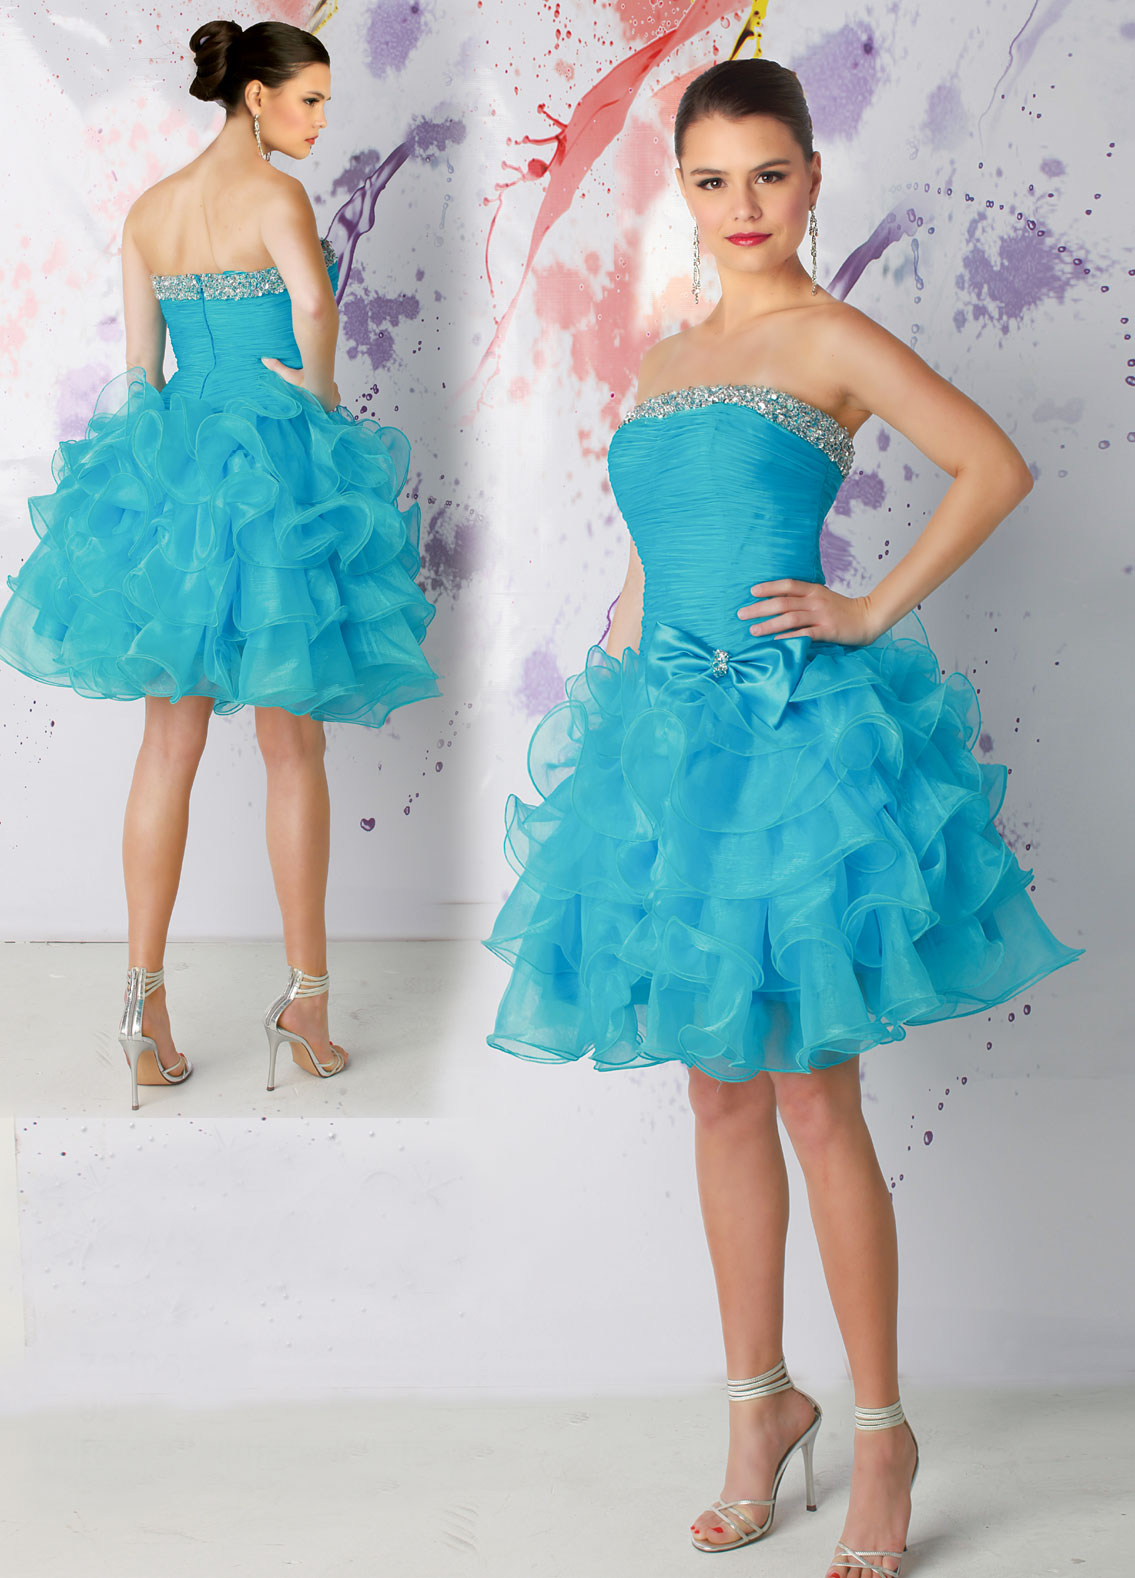 b0c0779dbf Short Prom dresses - chic short prom dresses.